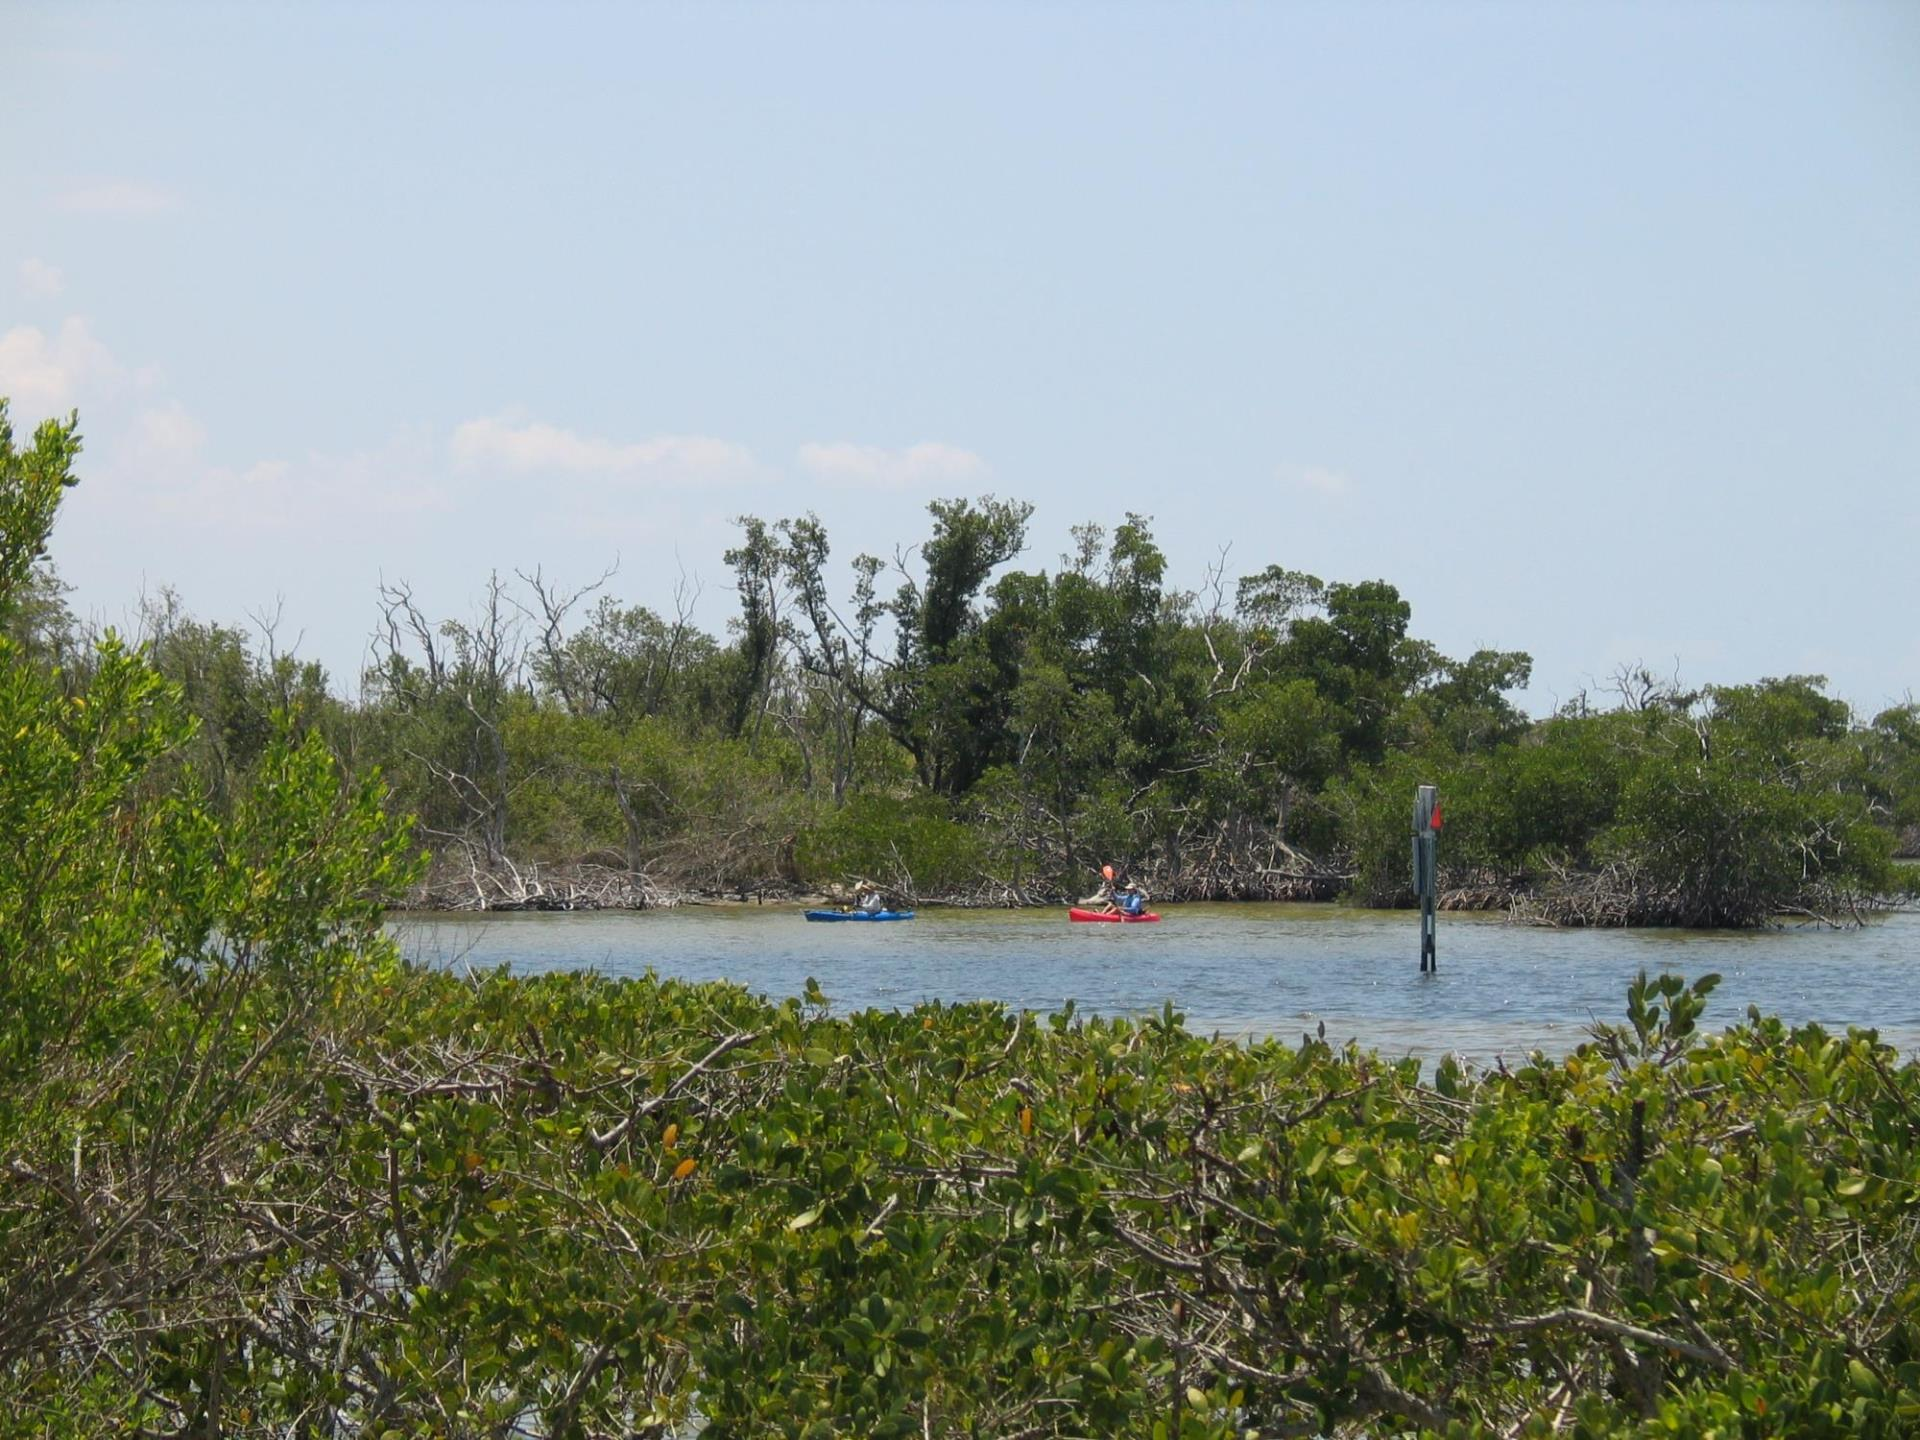 Kayakers in the water at Ponce Park